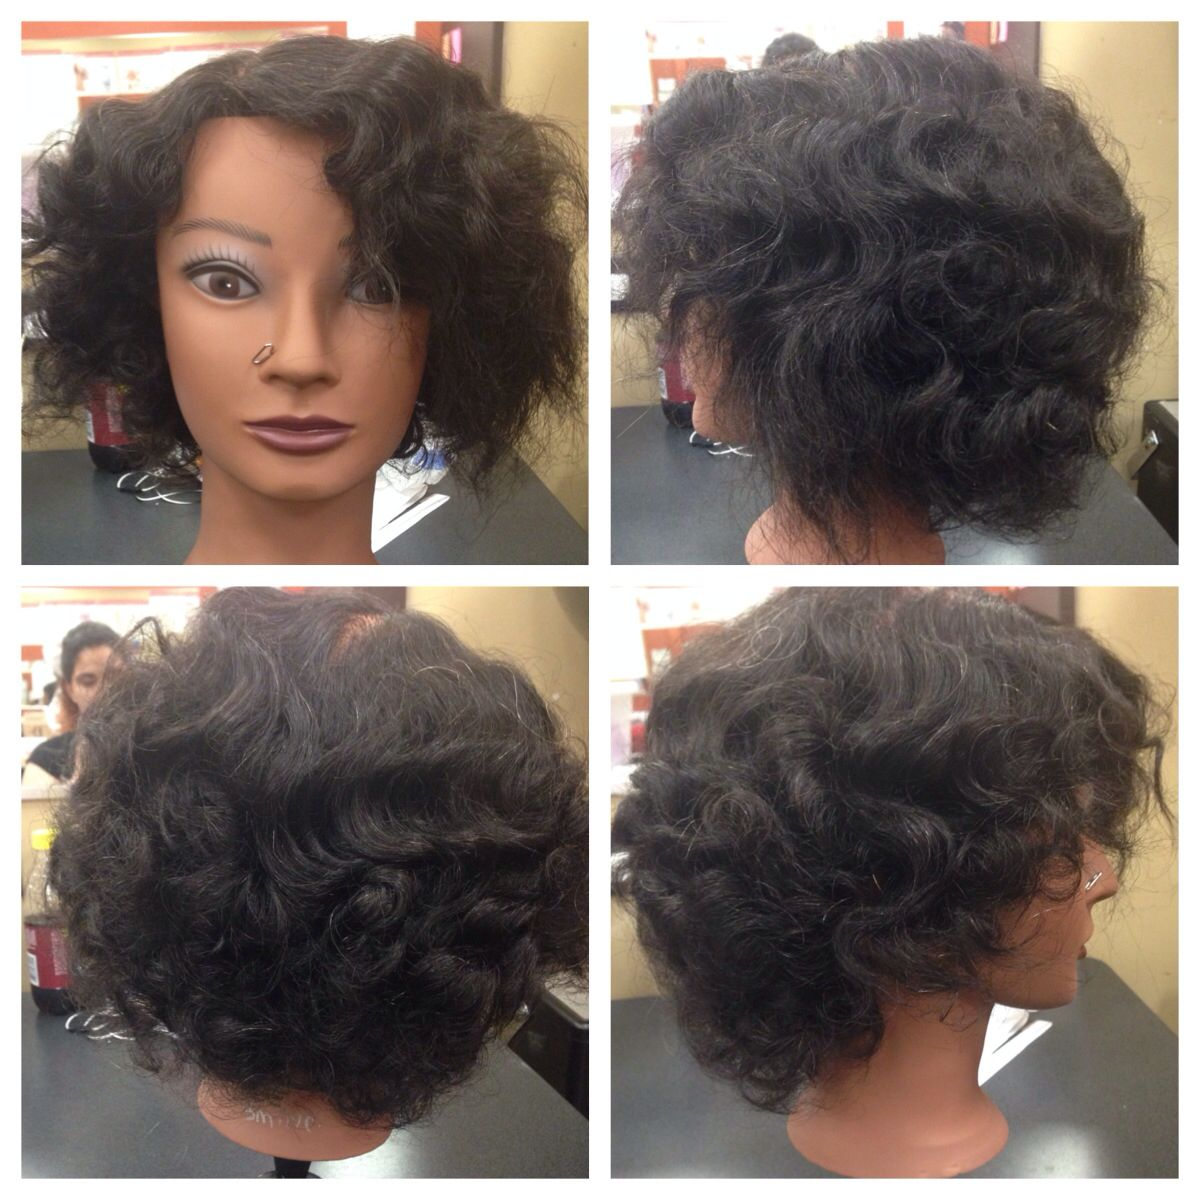 Fun with perm rods Perm rods, Hair styles, Perm